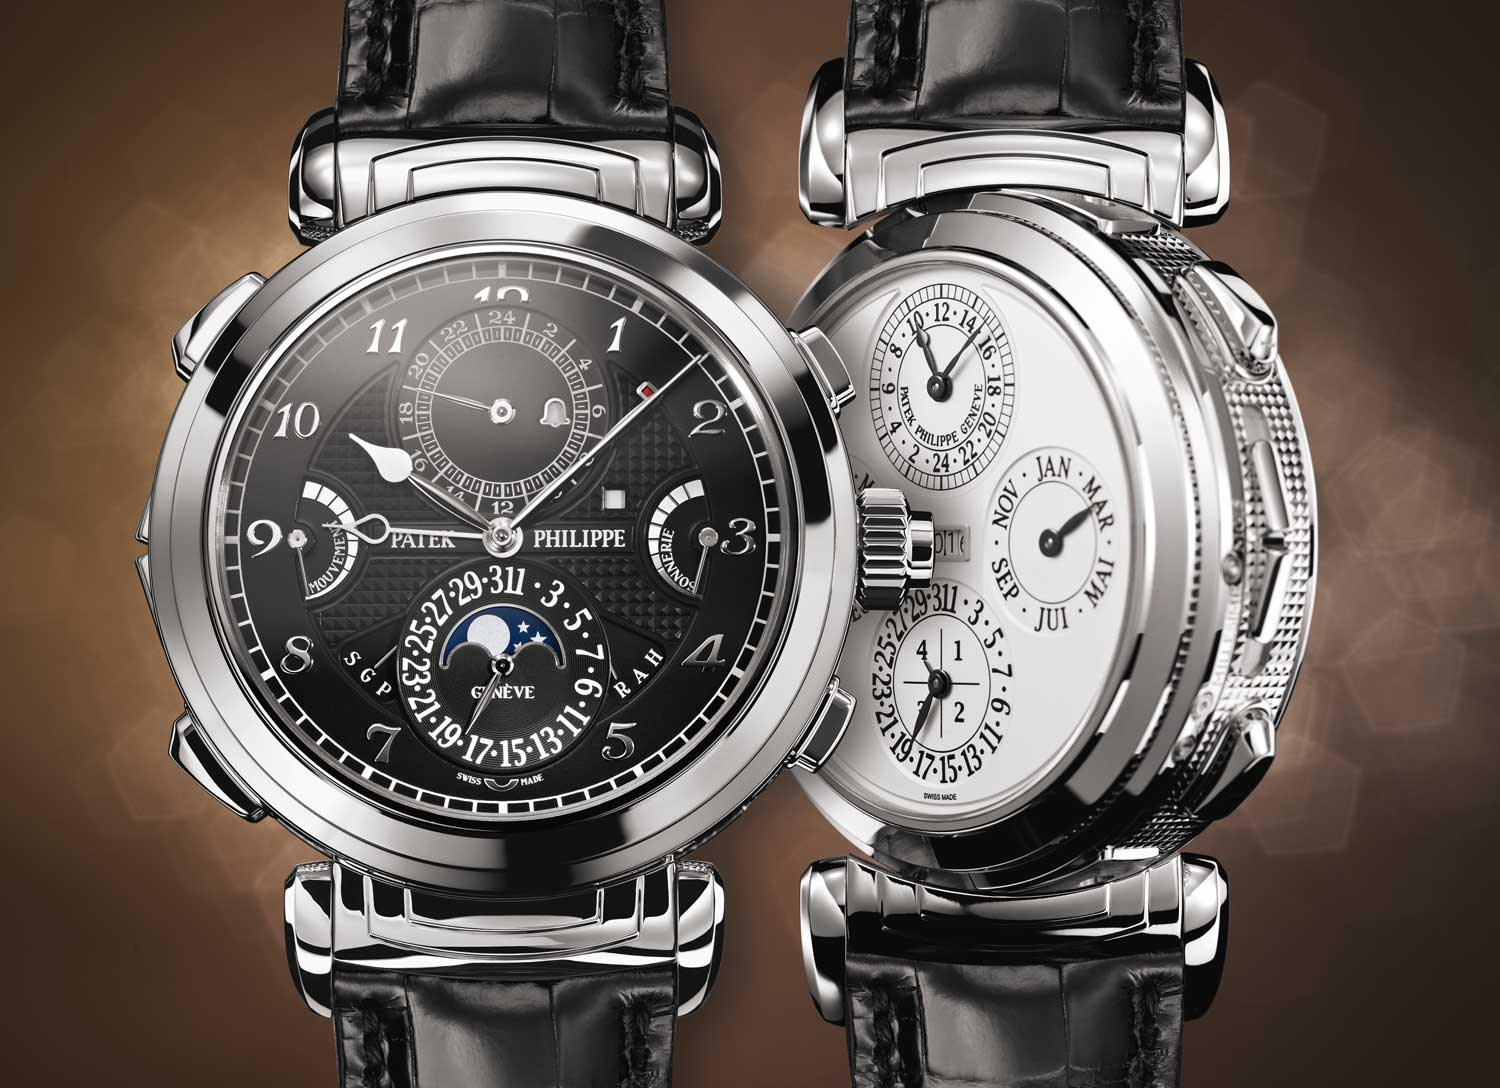 In 2016, the Grandmaster Chime became part of Patek's regular production as the ref. 6300, with more discreet hand engine-turned engraving on the case-middle than the elaborately hand-engraved ref. 5175